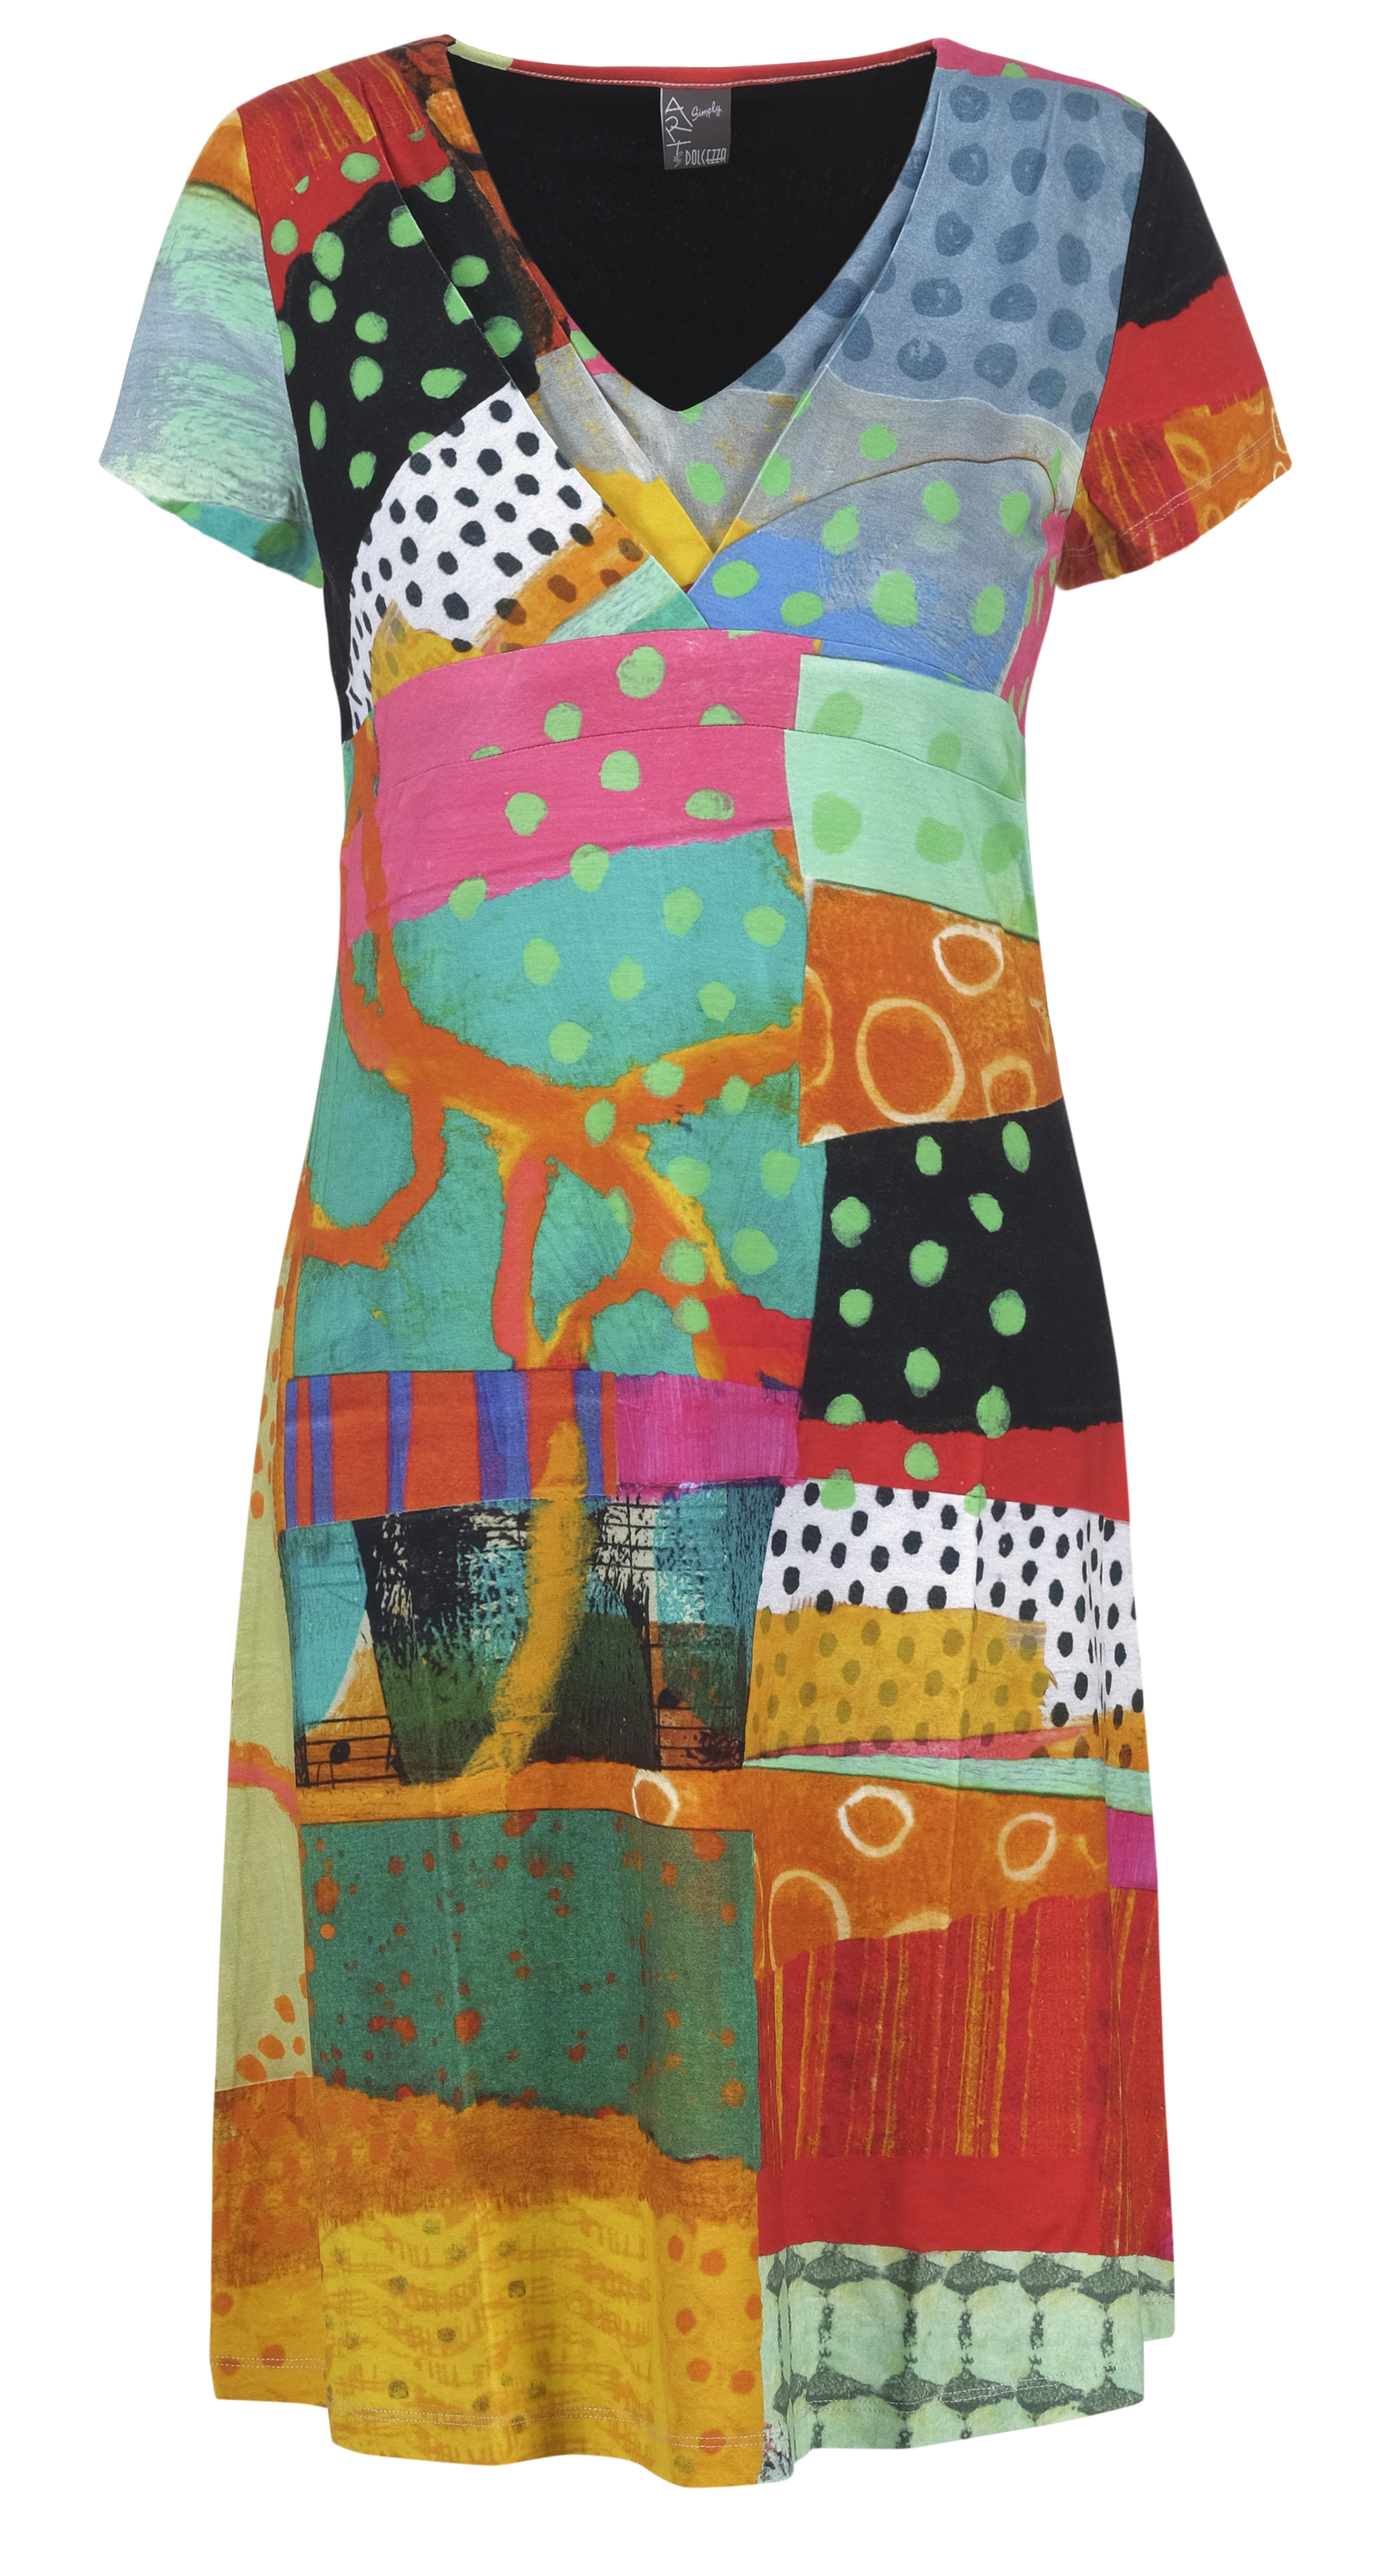 Simply Art Dolcezza: Leisurely Love Stowe In October Flared Abstract Art Dress (1 Left!) Dolcezza_SimplyArt_21653